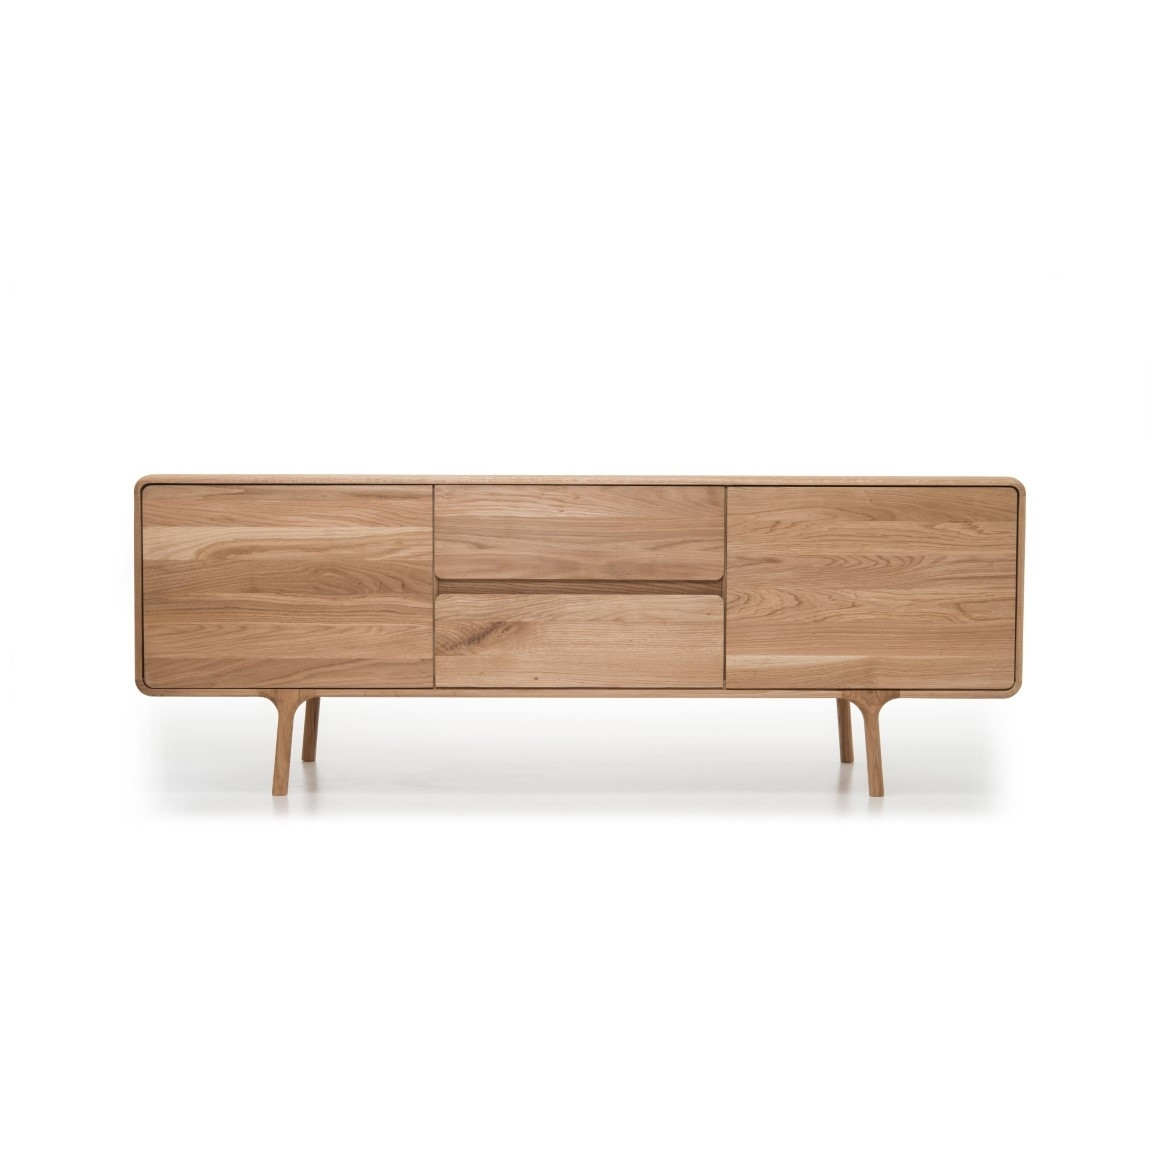 Inspiration about Decovry, Exclusive Home Decoration Within Most Up To Date Oil Pale Finish 3 Door Sideboards (#17 of 20)